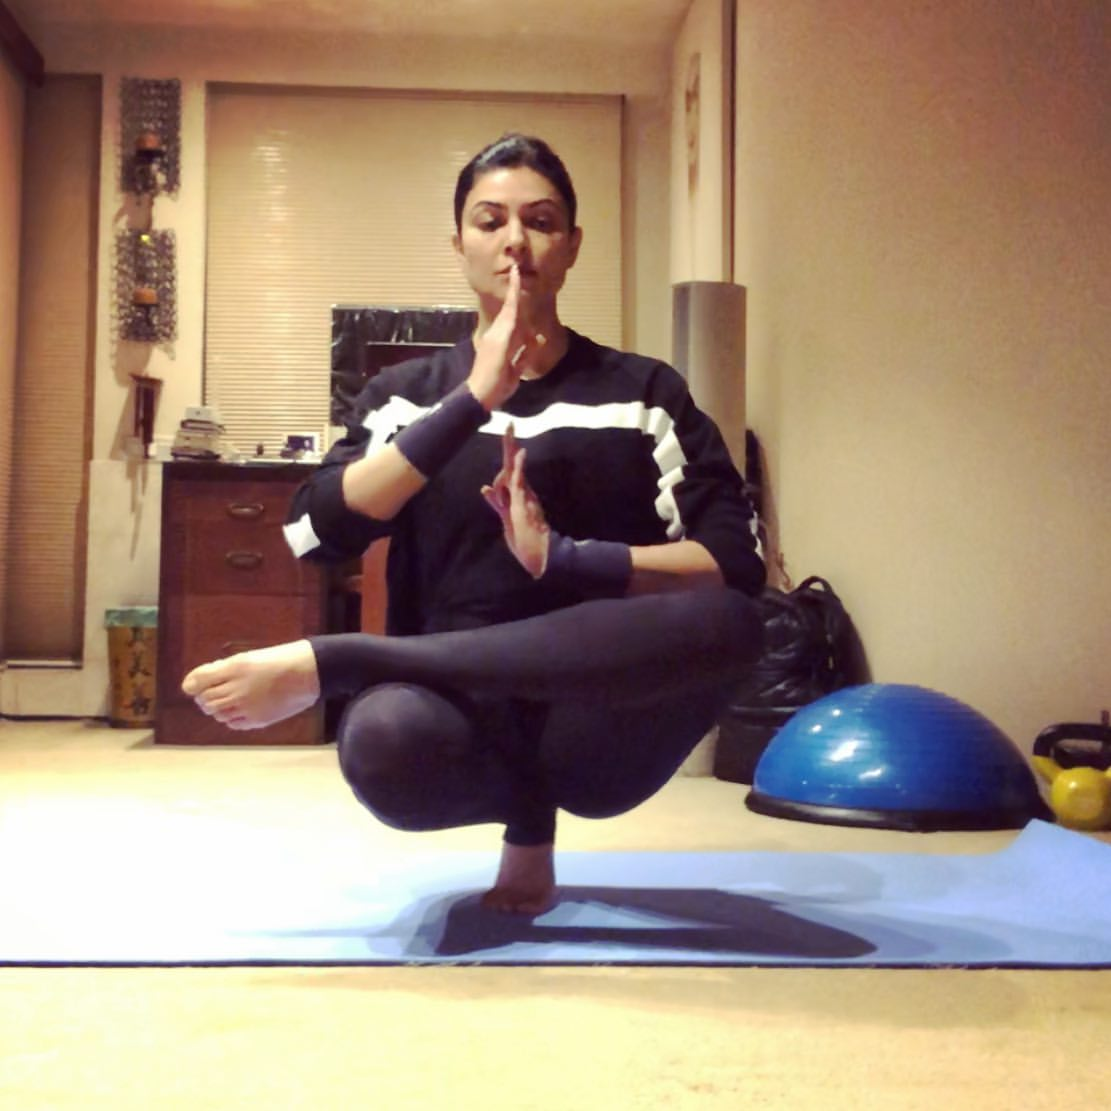 Sushmita Sen Inspires Her Fans As She Shares Yoga Poses To Stay Active During The Coronavirus Lockdown Pinkvilla